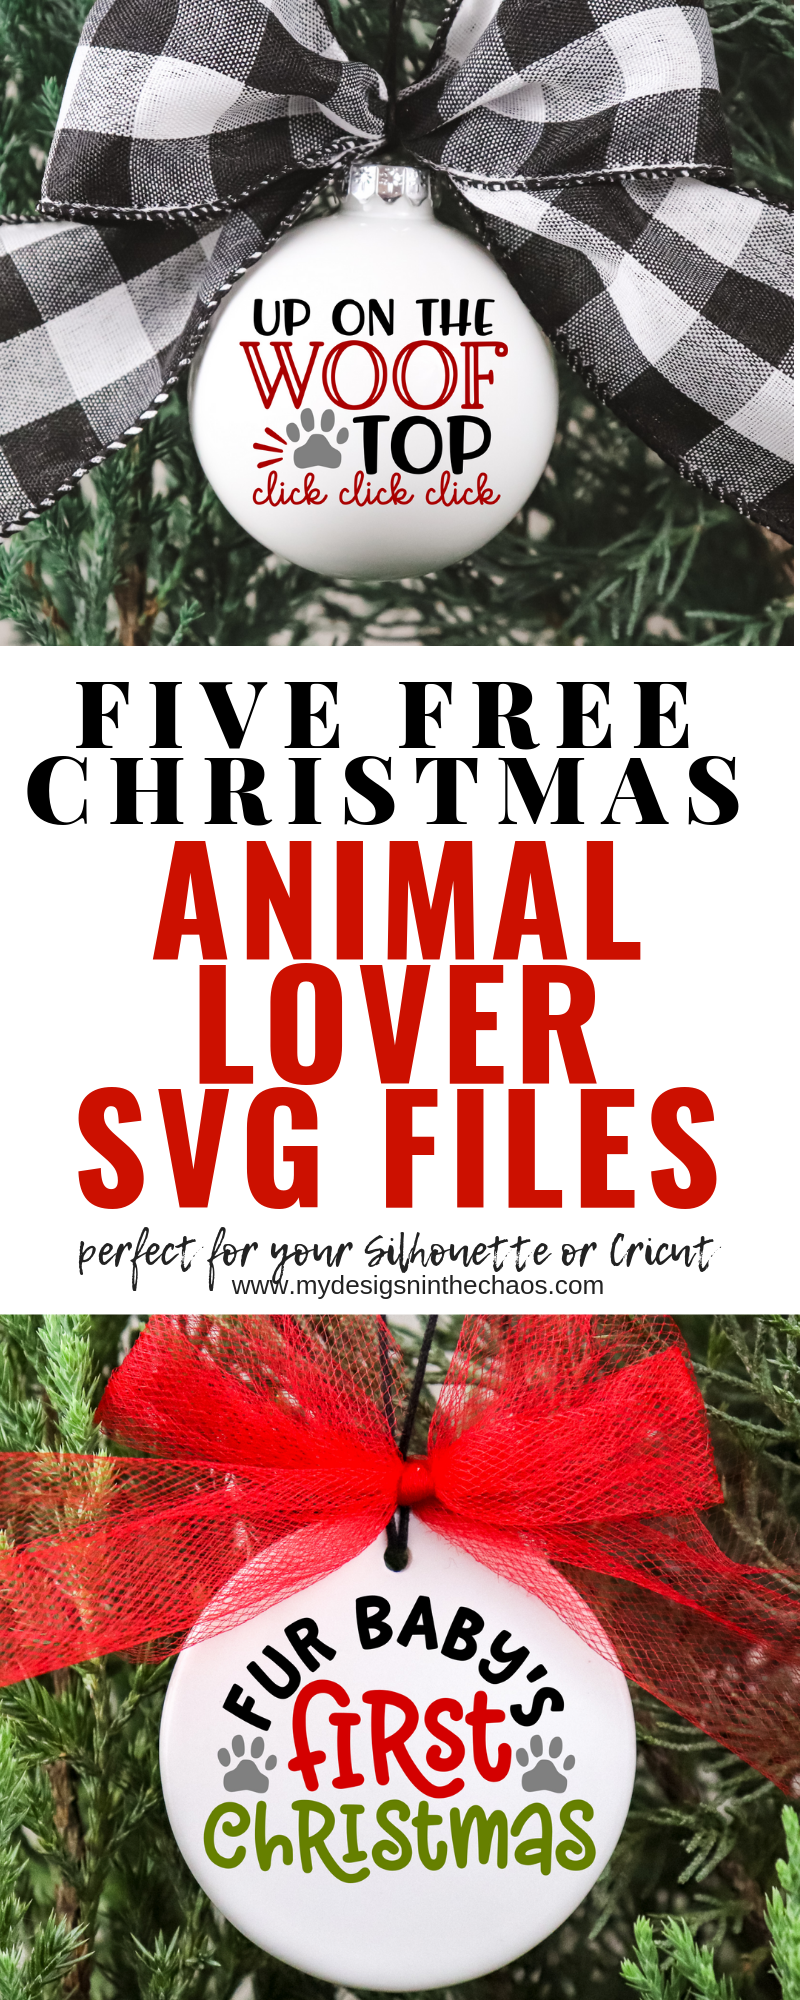 Free Animal Lover Christmas Svg Files My Designs In The Chaos Download transparent paw patrol png for free on pngkey.com. free animal lover christmas svg files